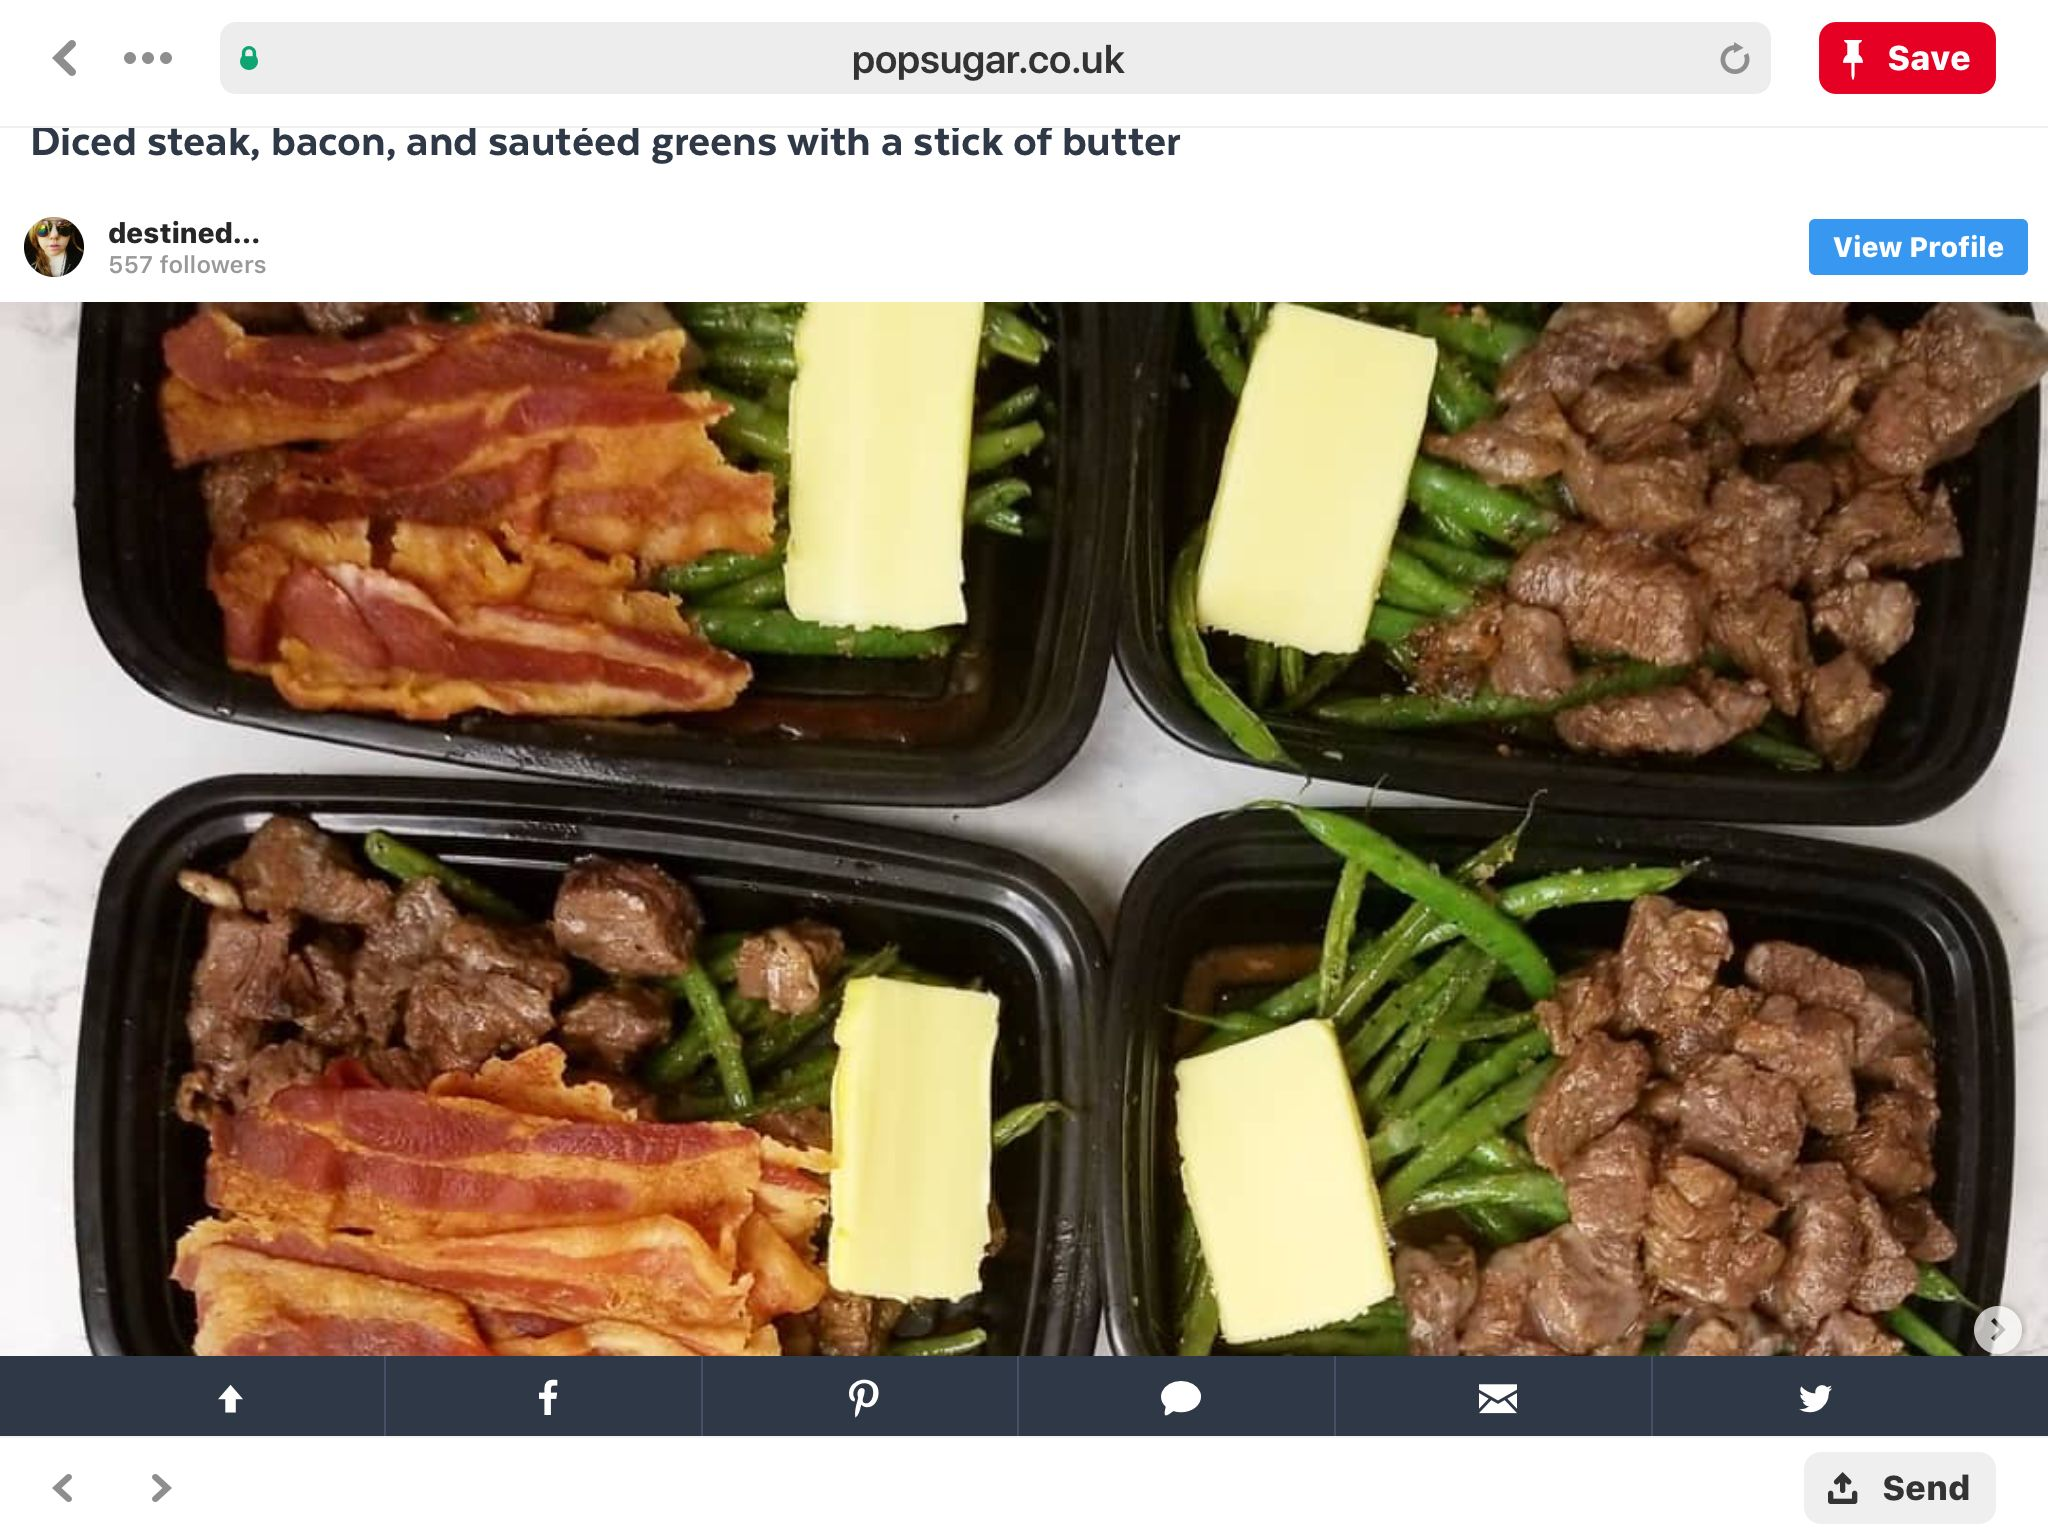 Pin By Lisa Clark Manuele On Keto Stick Of Butter Sauteed Greens Food